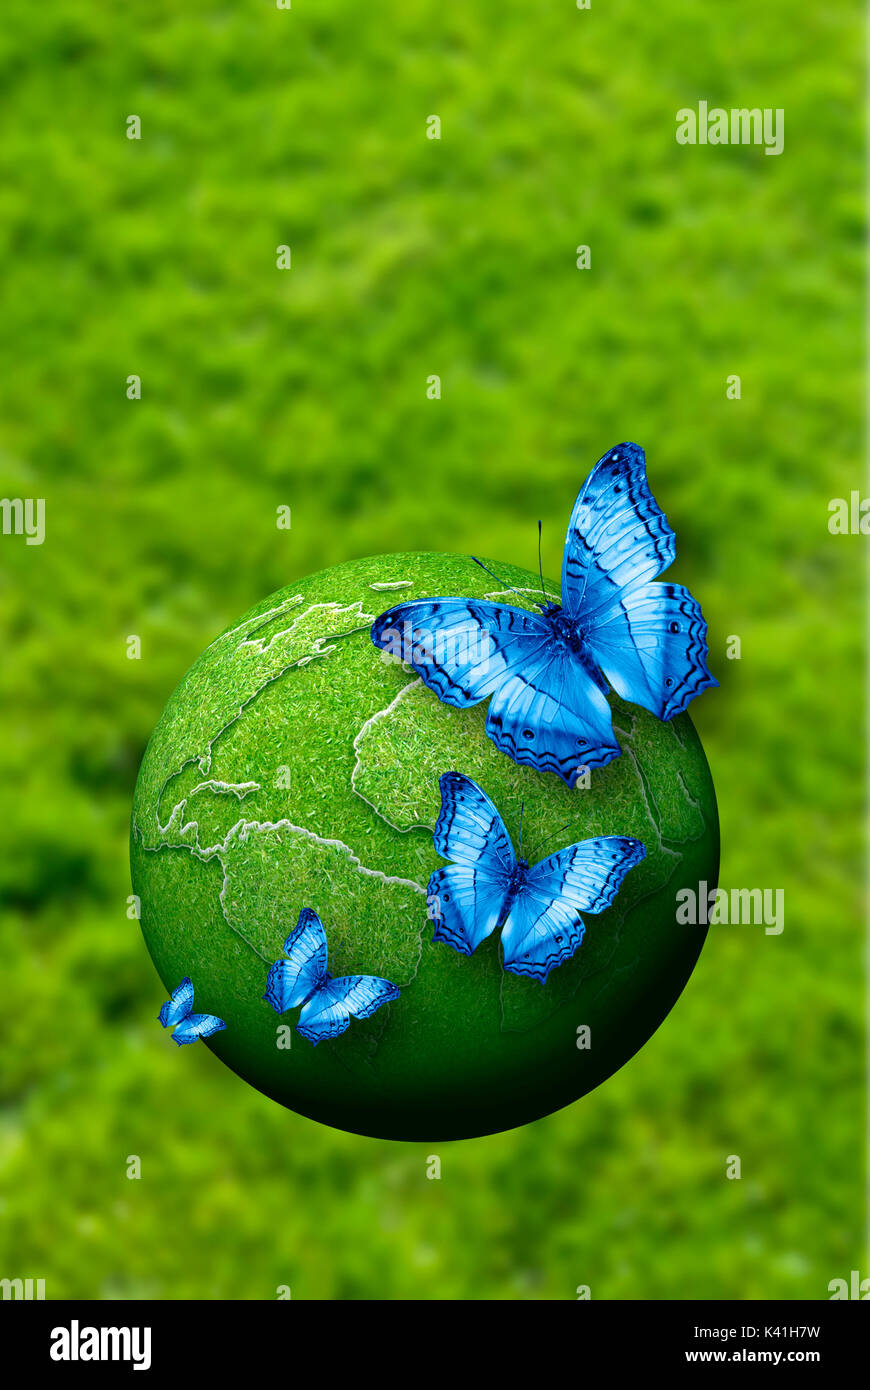 butterflies and green earth, ecology concept - Stock Image